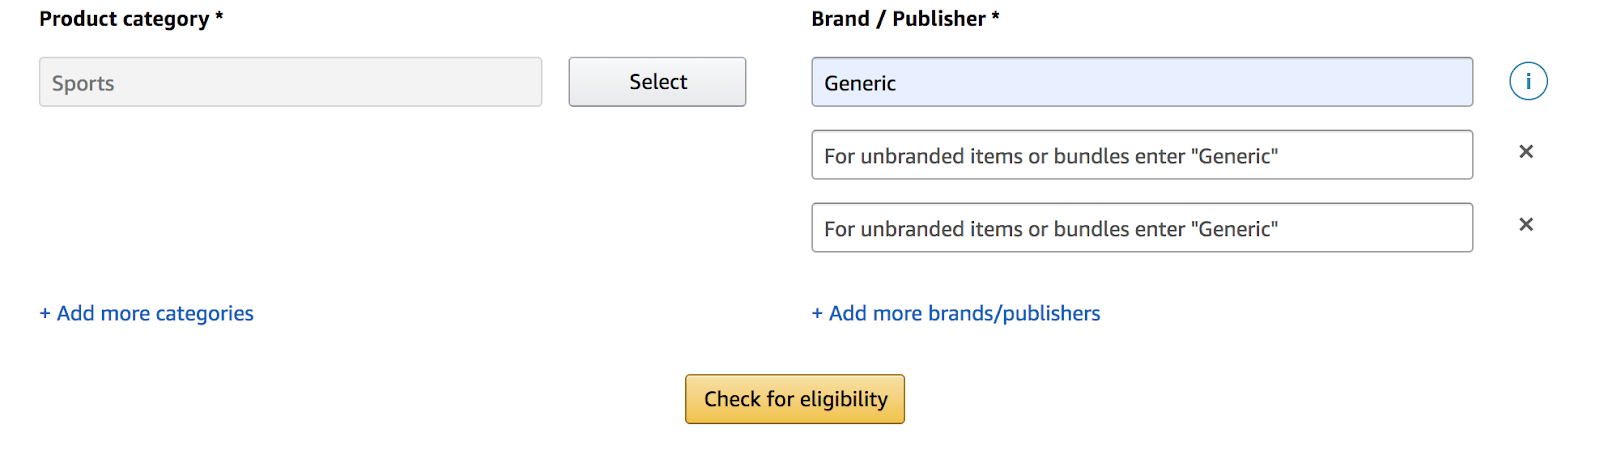 Amazon GTIN exemption: product category options